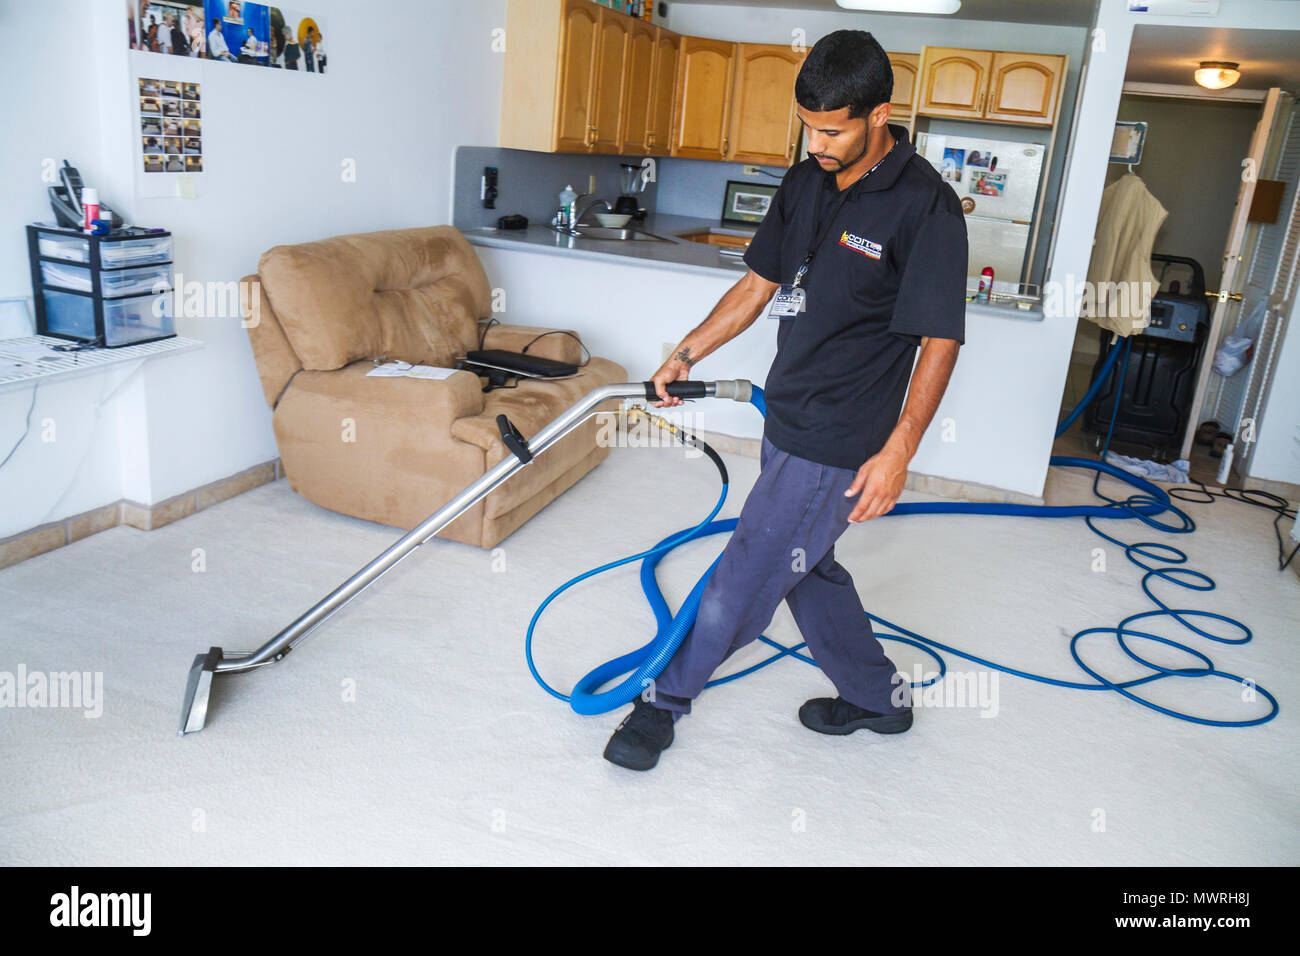 sofa cleaning miami beach rose acnl man home vacuum cleaner stock photos and